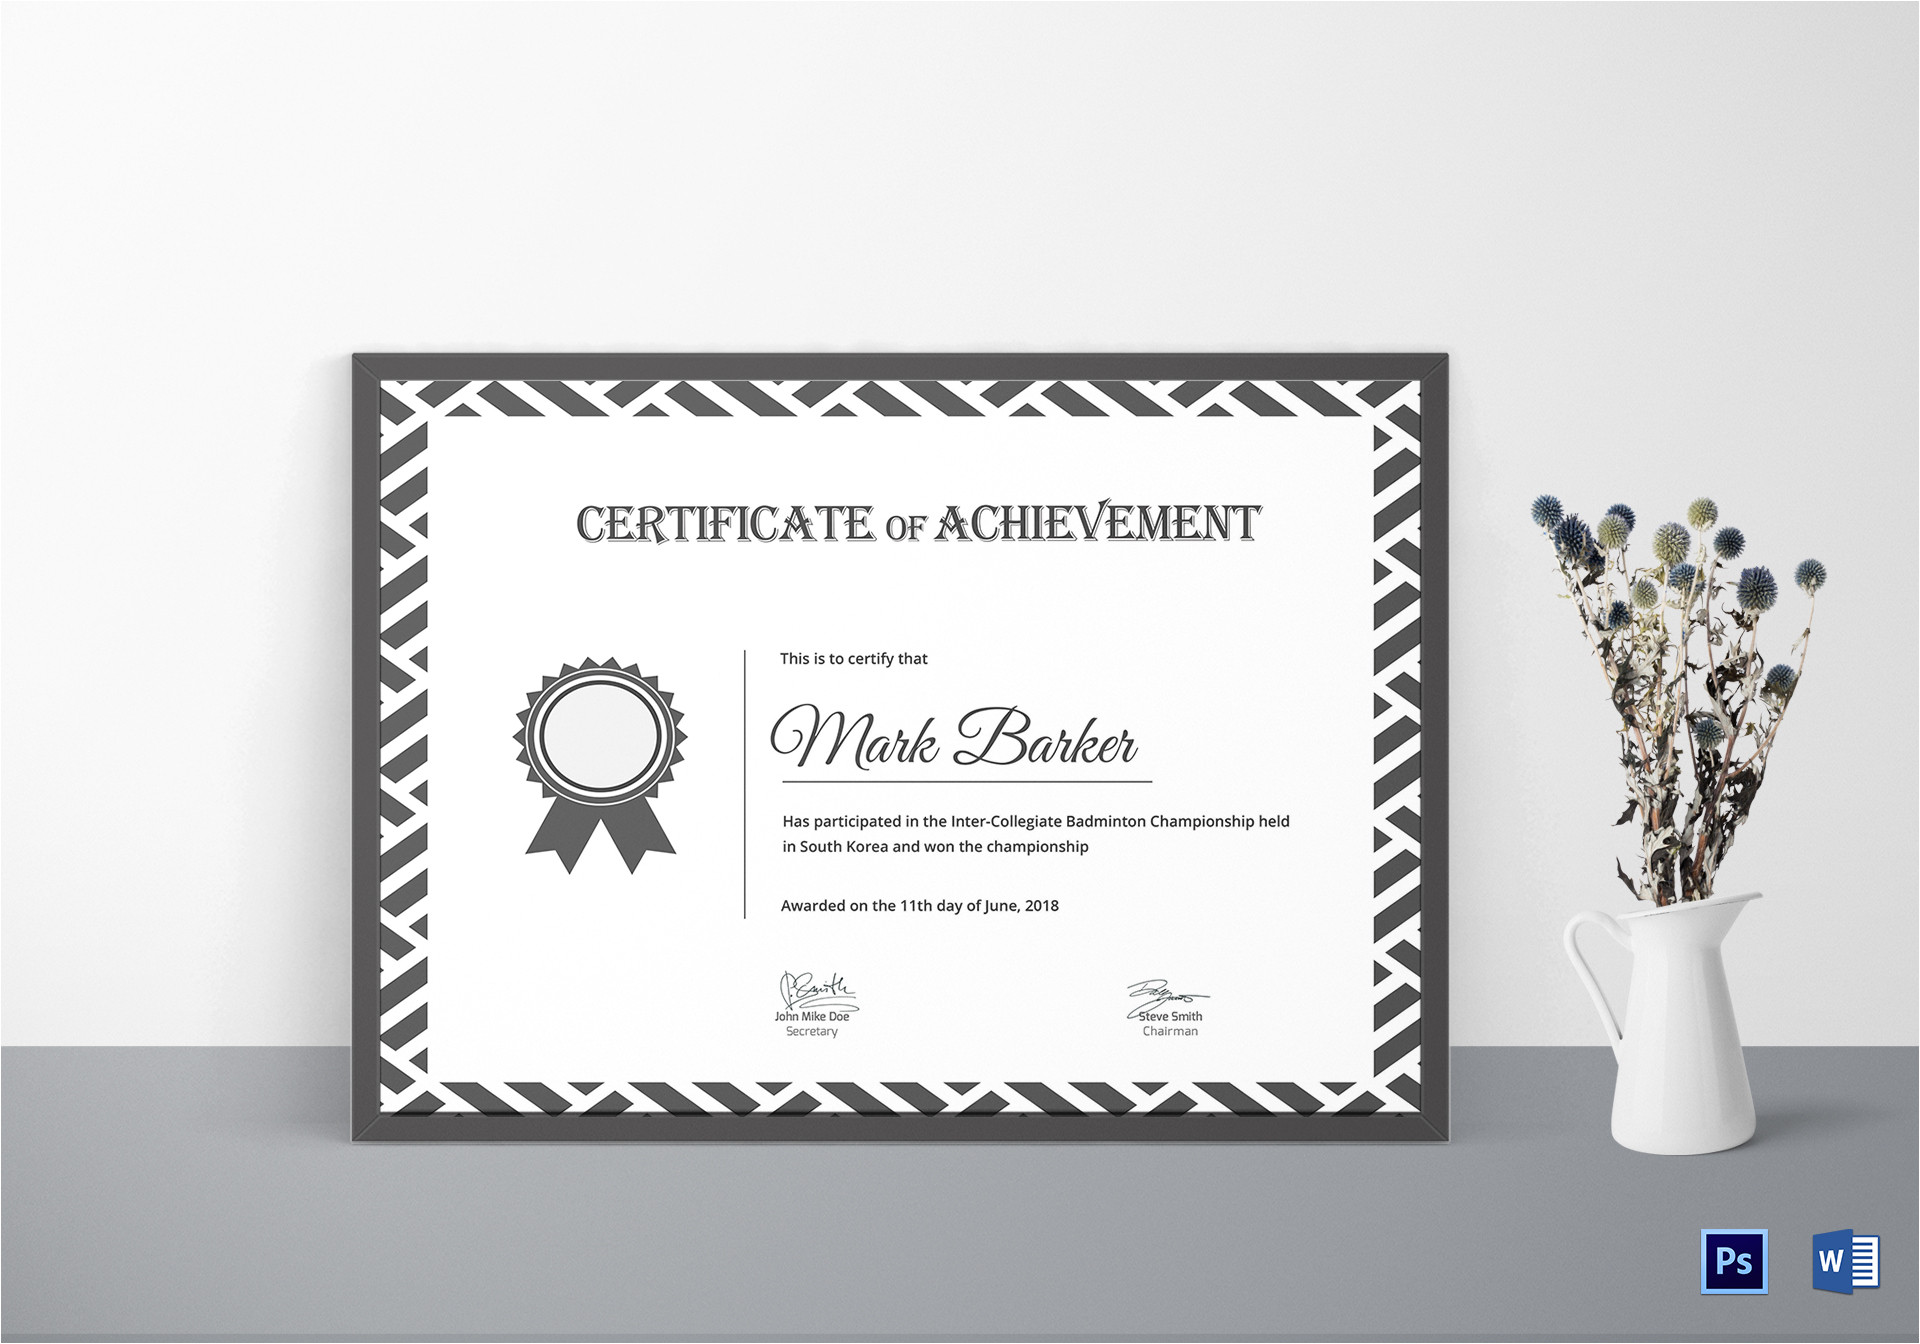 Badminton Certificate Template Badminton Achievement Certificate Design Template In Psd Word